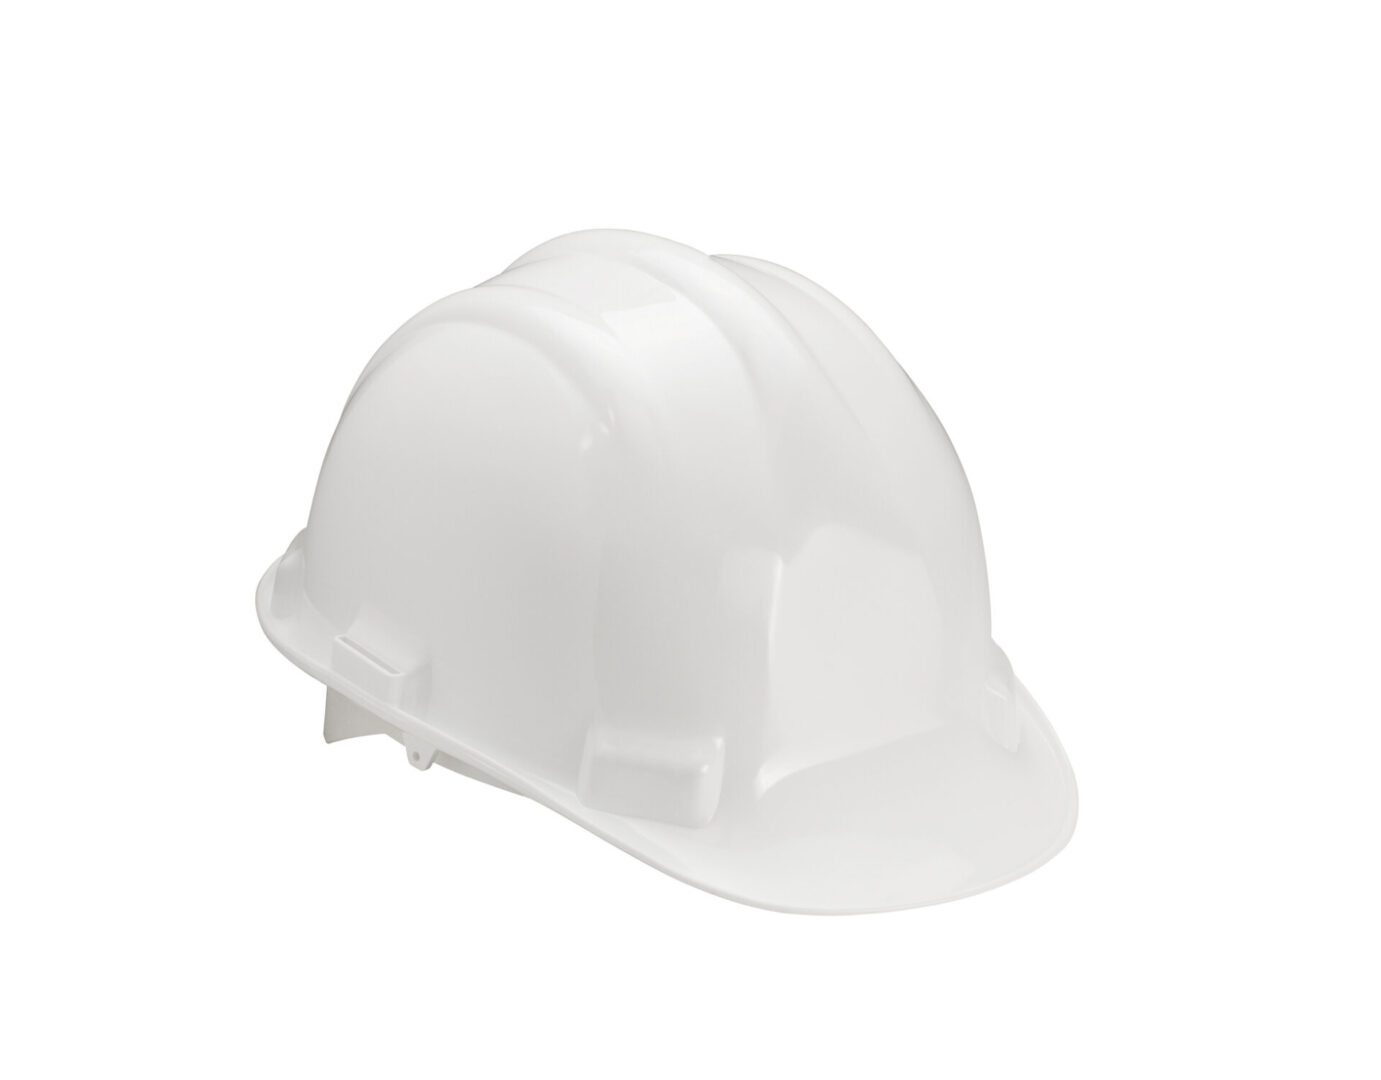 White Hard HatPlease see some similar pictures from my portfolio: